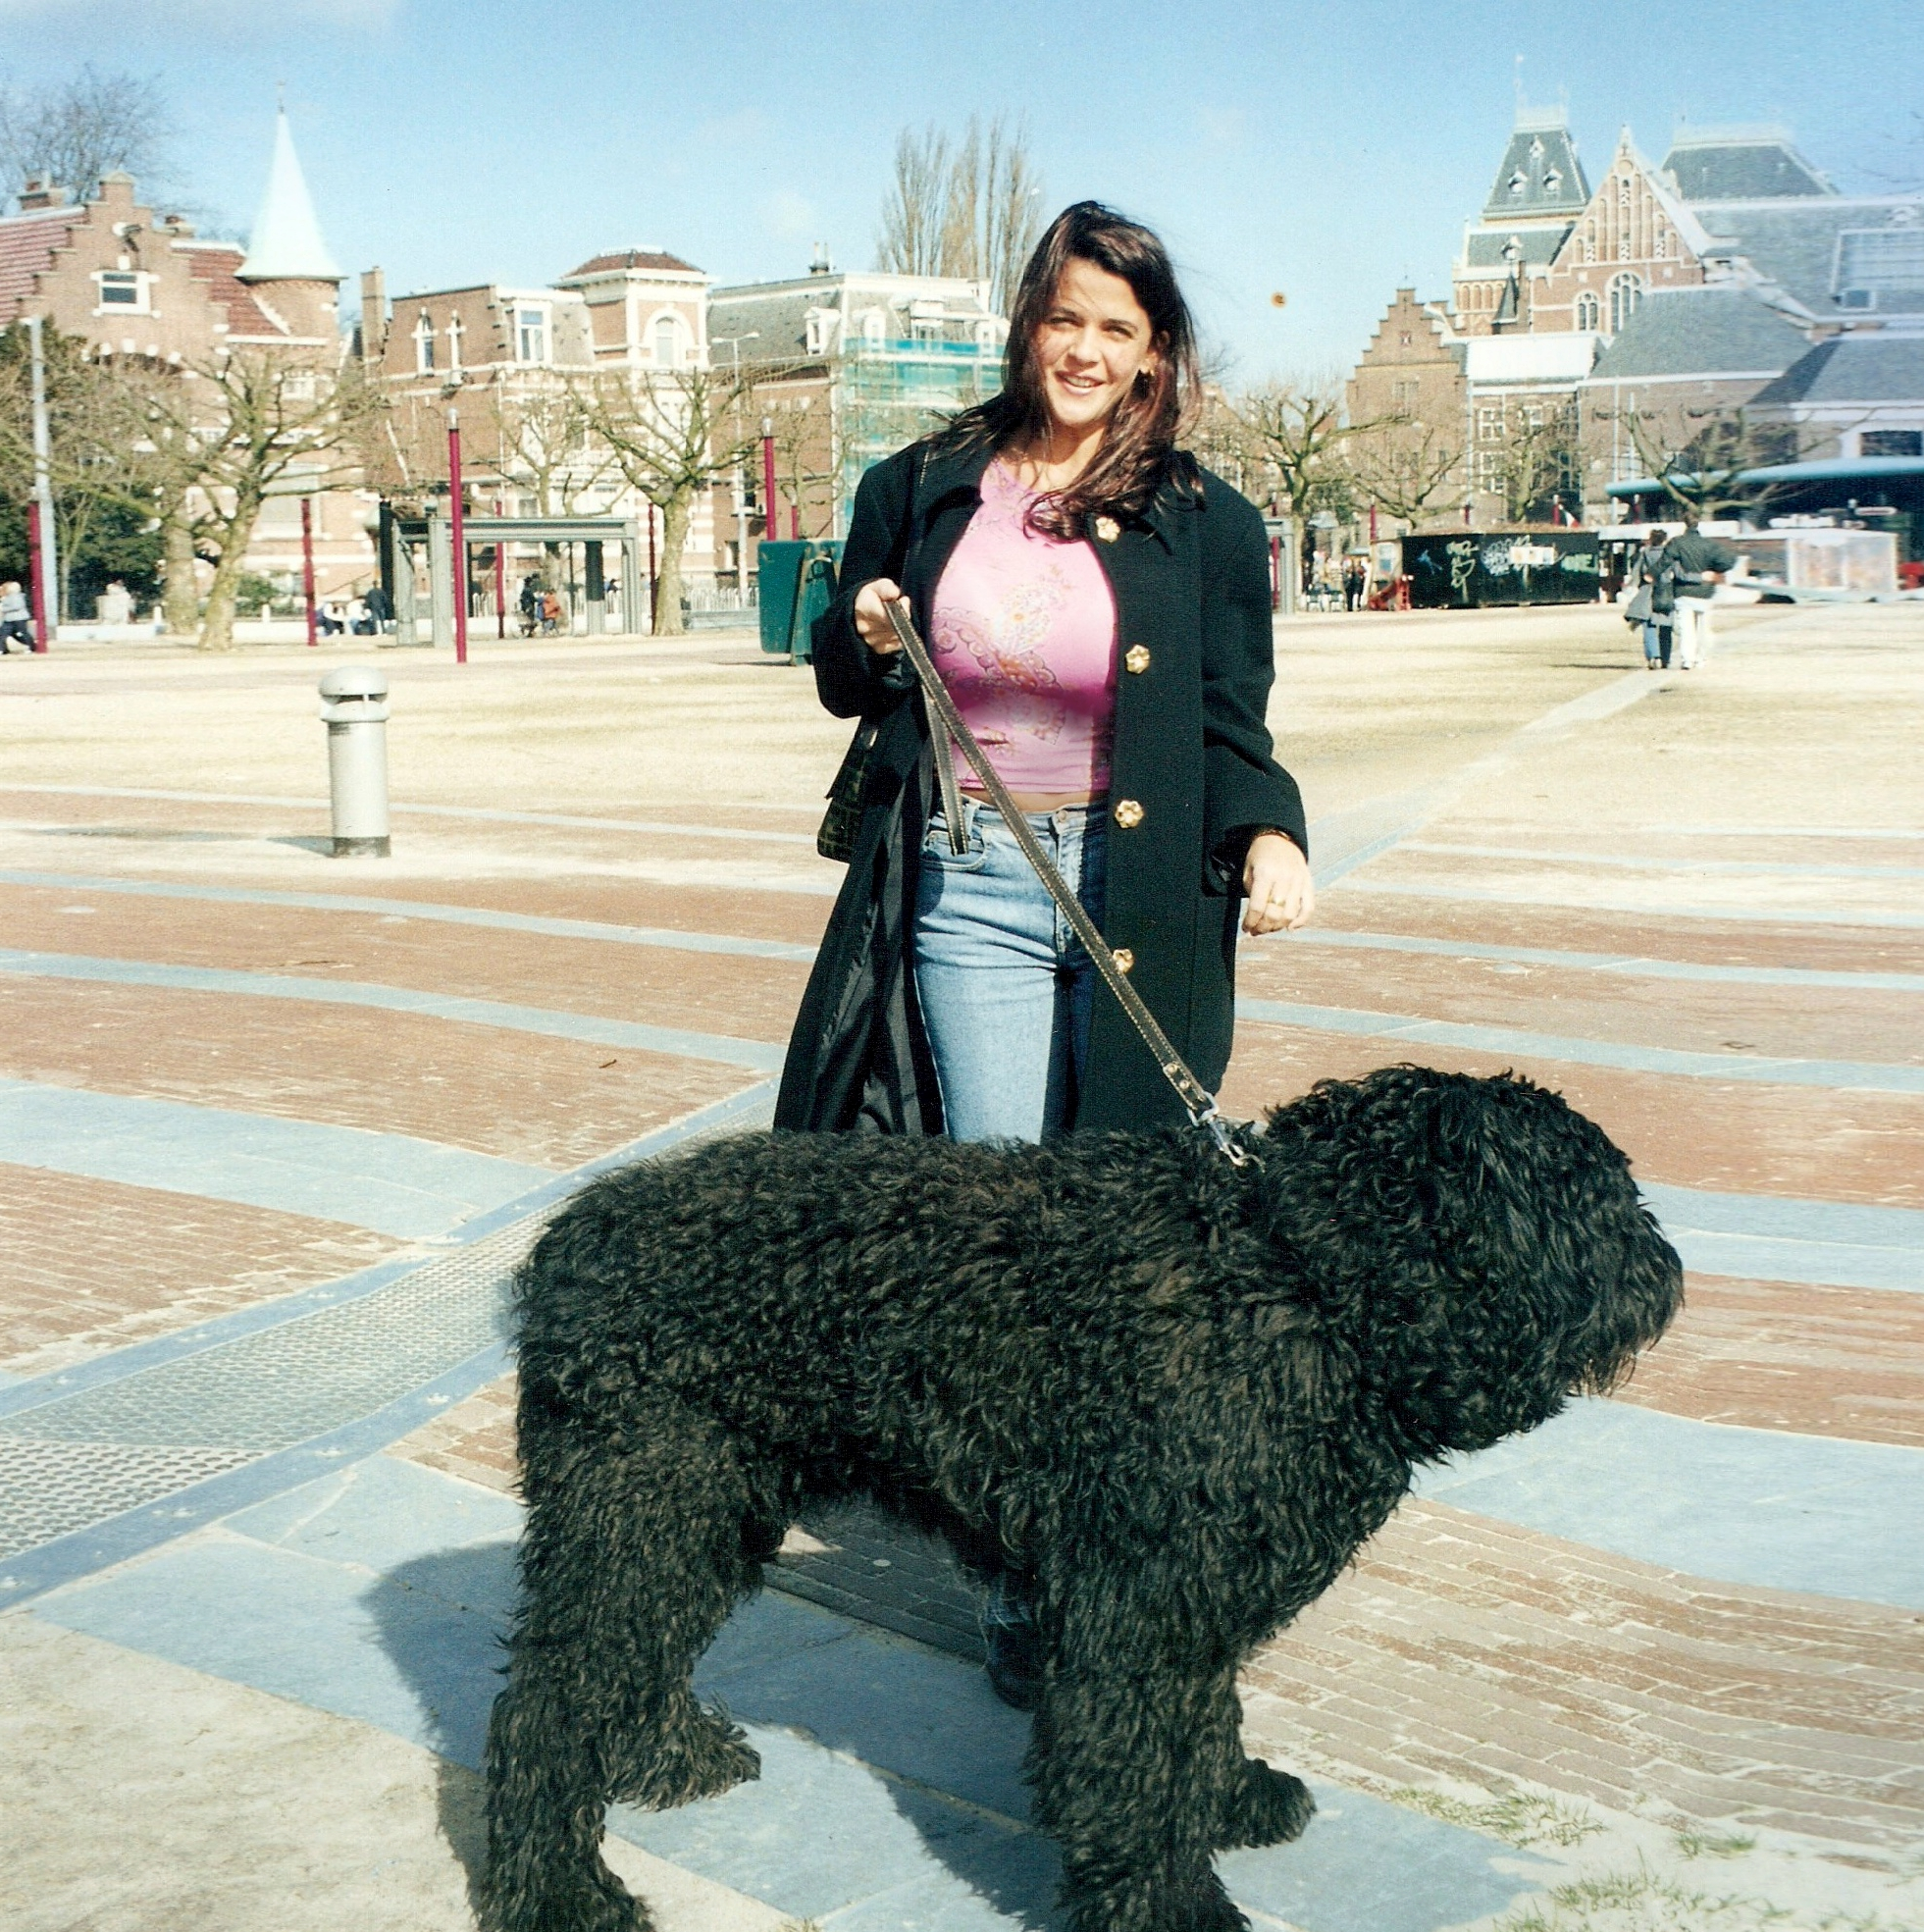 Downtown Amsterdam and a woman holding a big black cute dog